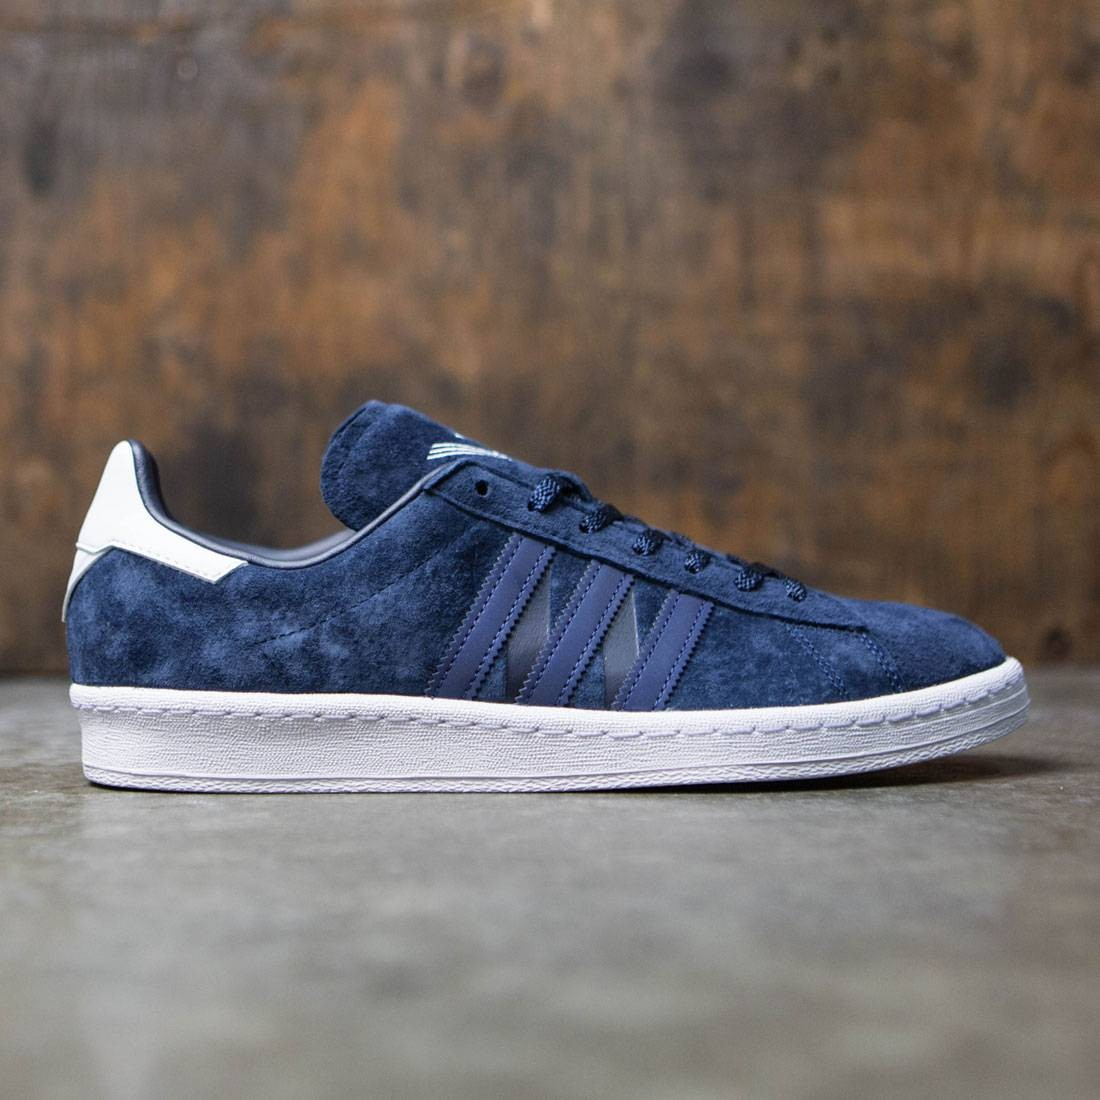 best sneakers 134a3 d3b70 ... Adidas Men WM CAMPUS 80s (navy collegiate navy mystery blue b9a1f9e  footwear white) c0f244d2 . ...